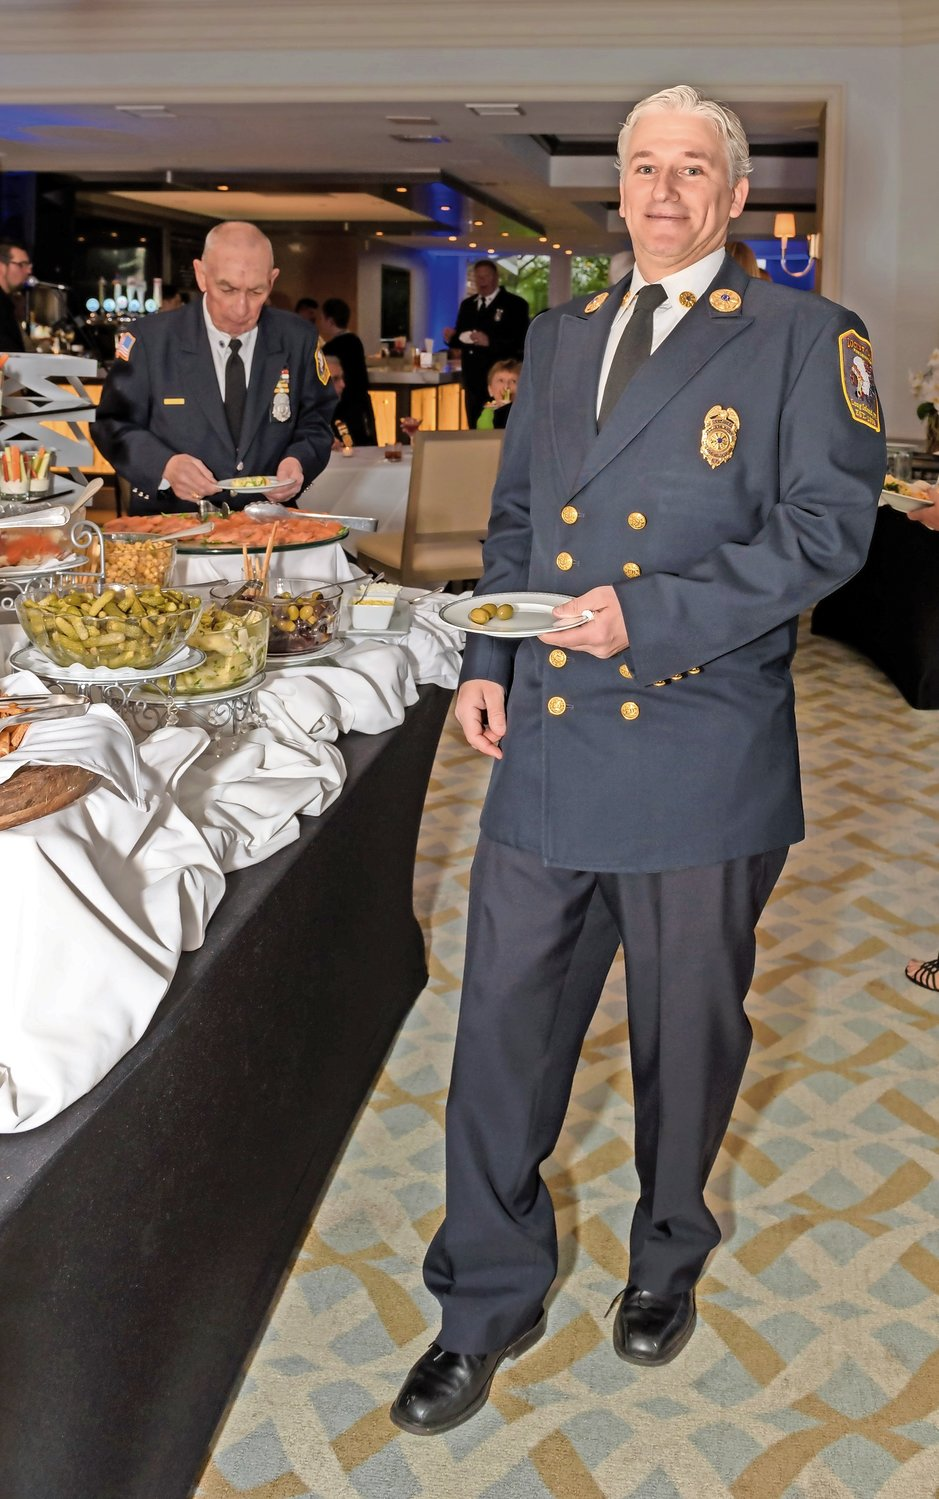 Ex-Chief Peter Greenfield enjoyed the delectable food served at the buffet.